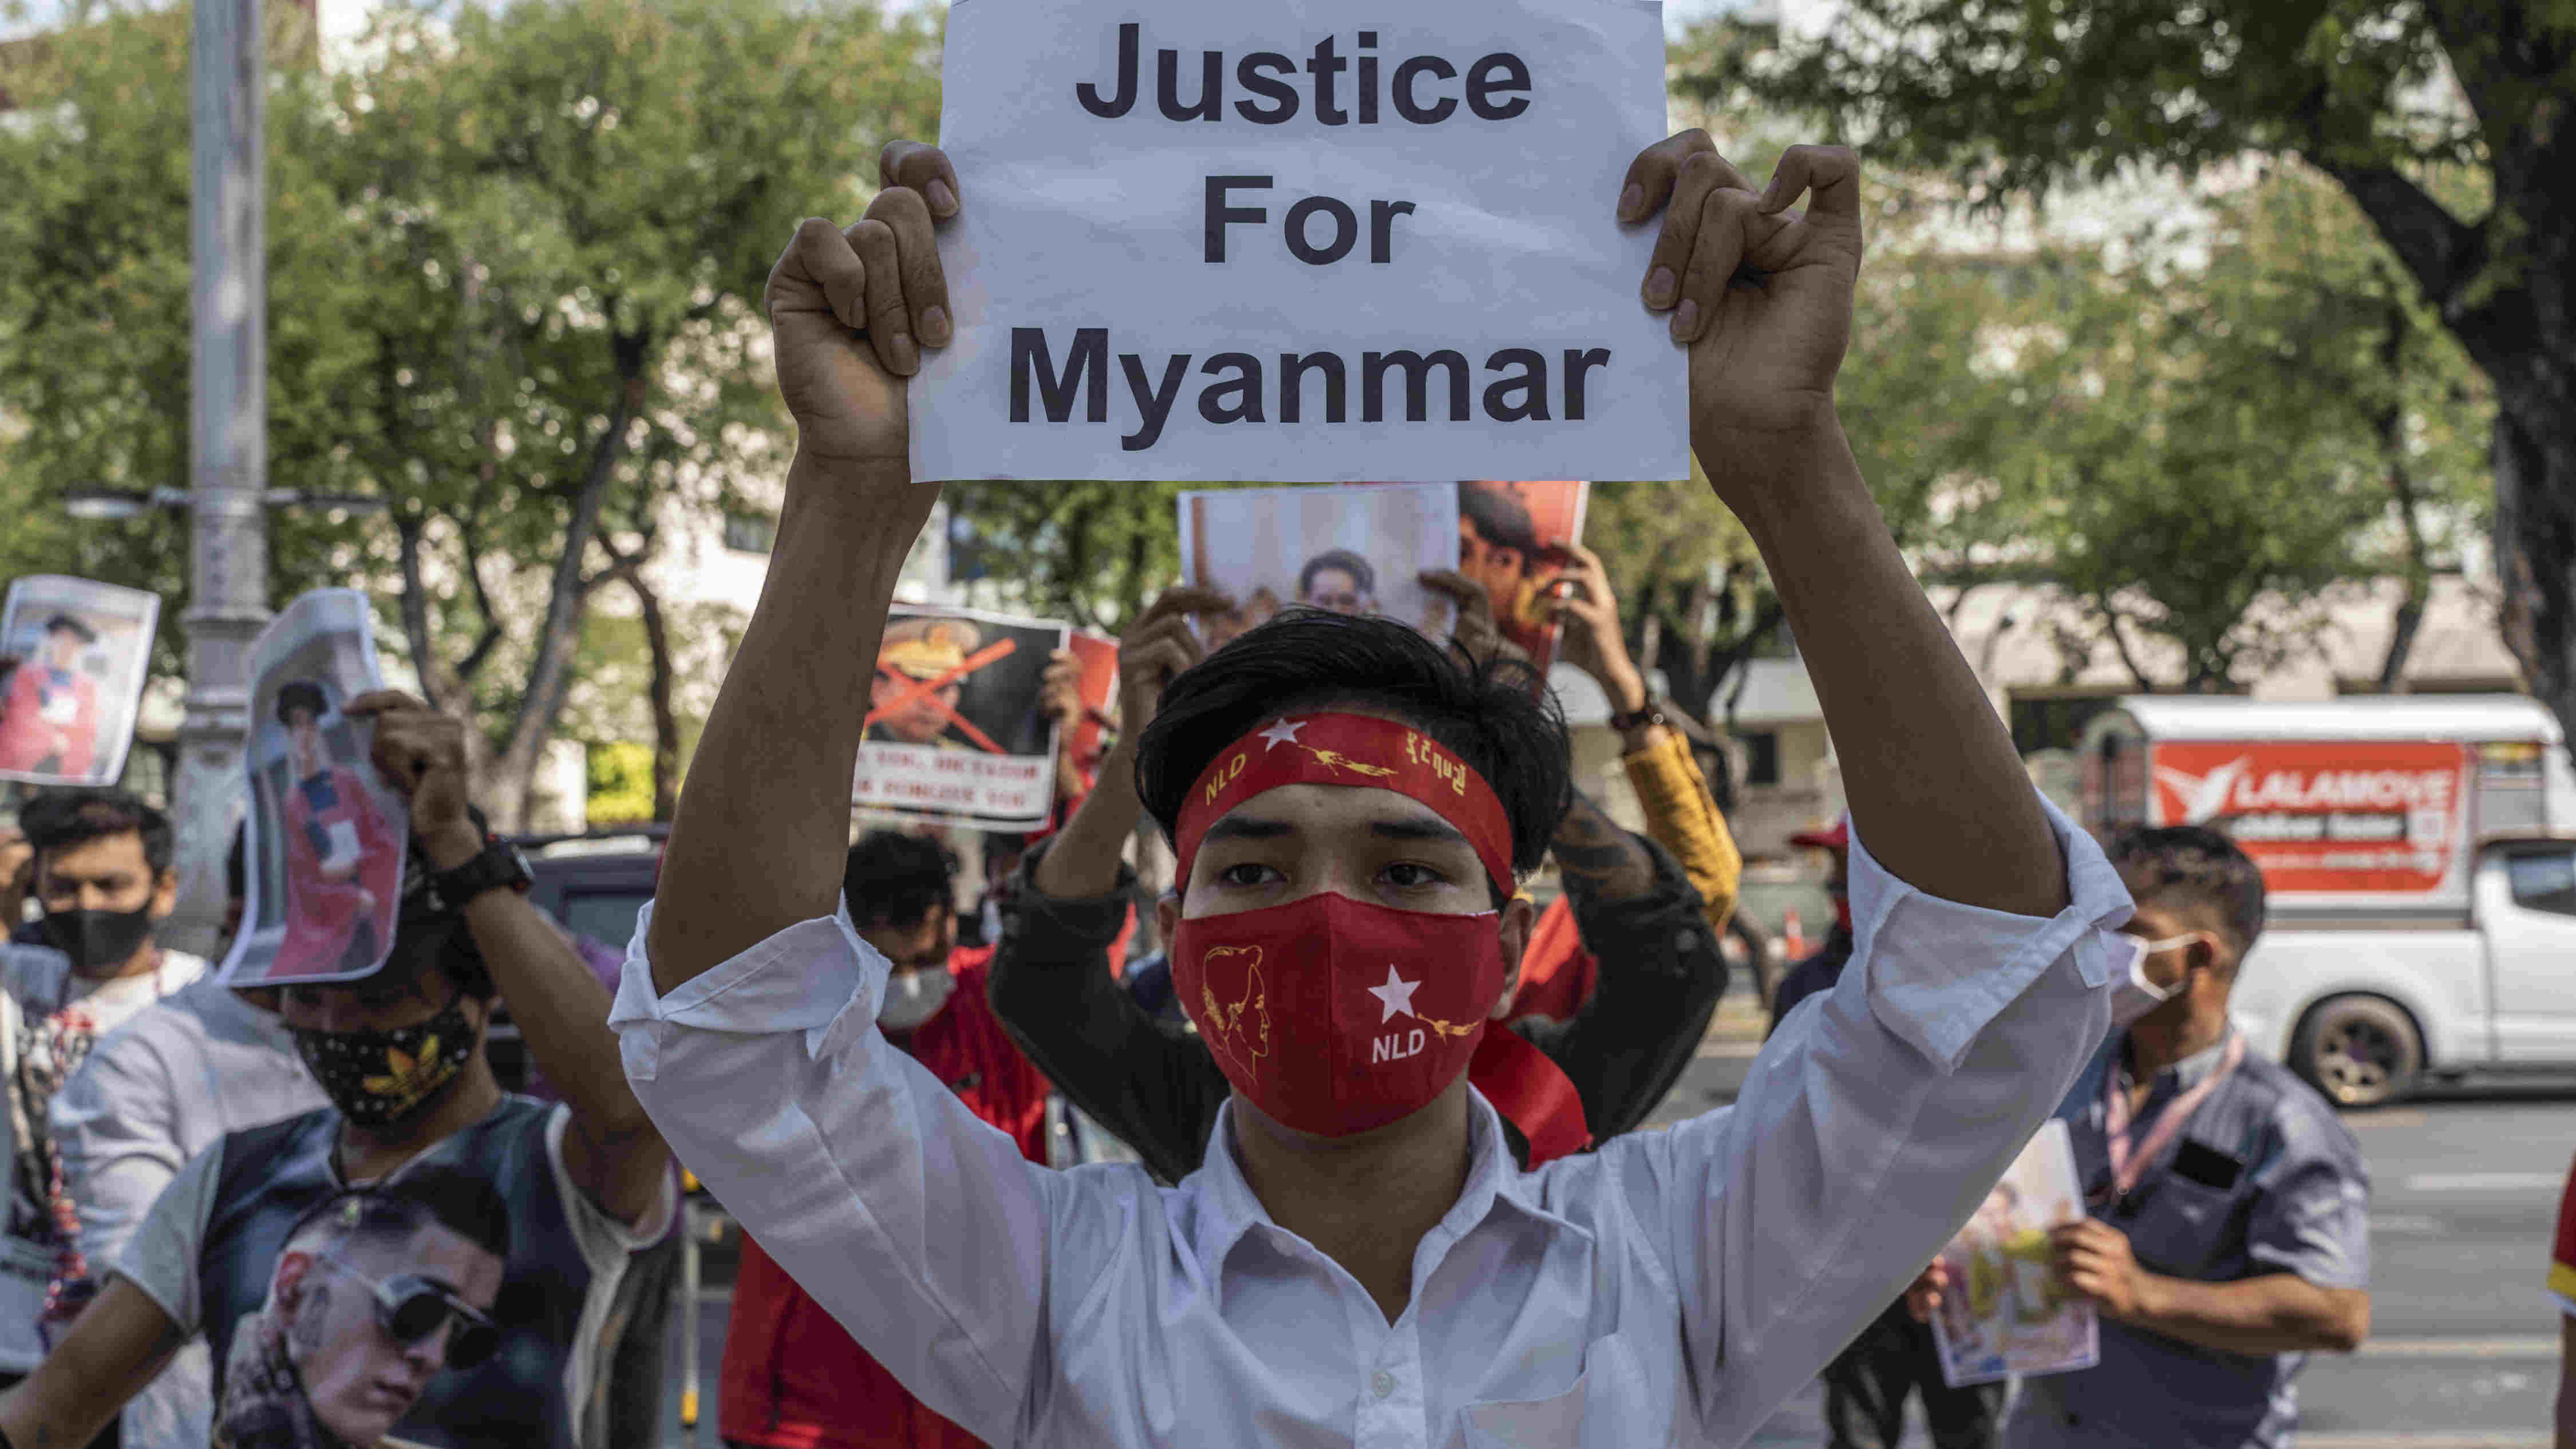 A person wearing a National League for Democracy (NLD) face mask and headband holds a signs during a demonstration outside the United Nations headquarters in Bangkok on Wednesday, Feb. 3, 2021, protesting the recent military coup in Myanmar.